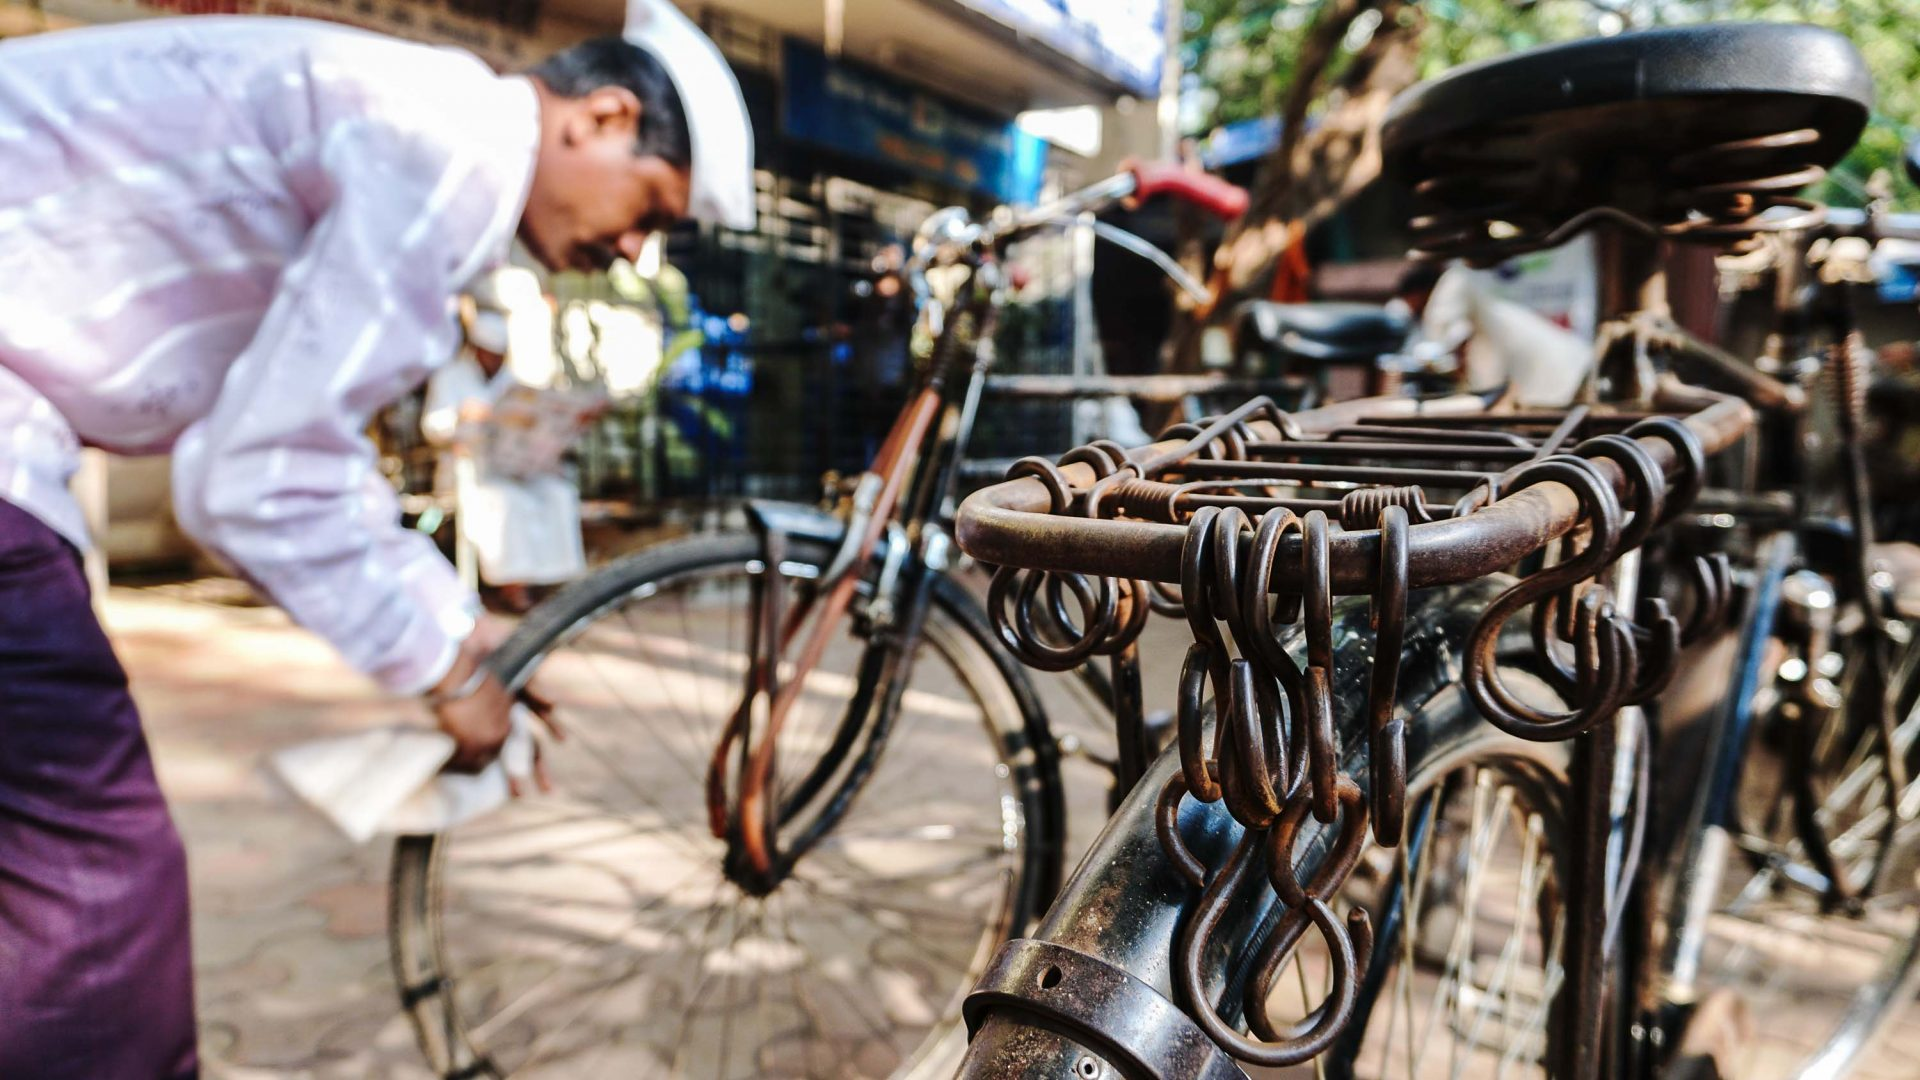 A dabbawala prepares his bicycle so that it's ready to carry the day's orders.